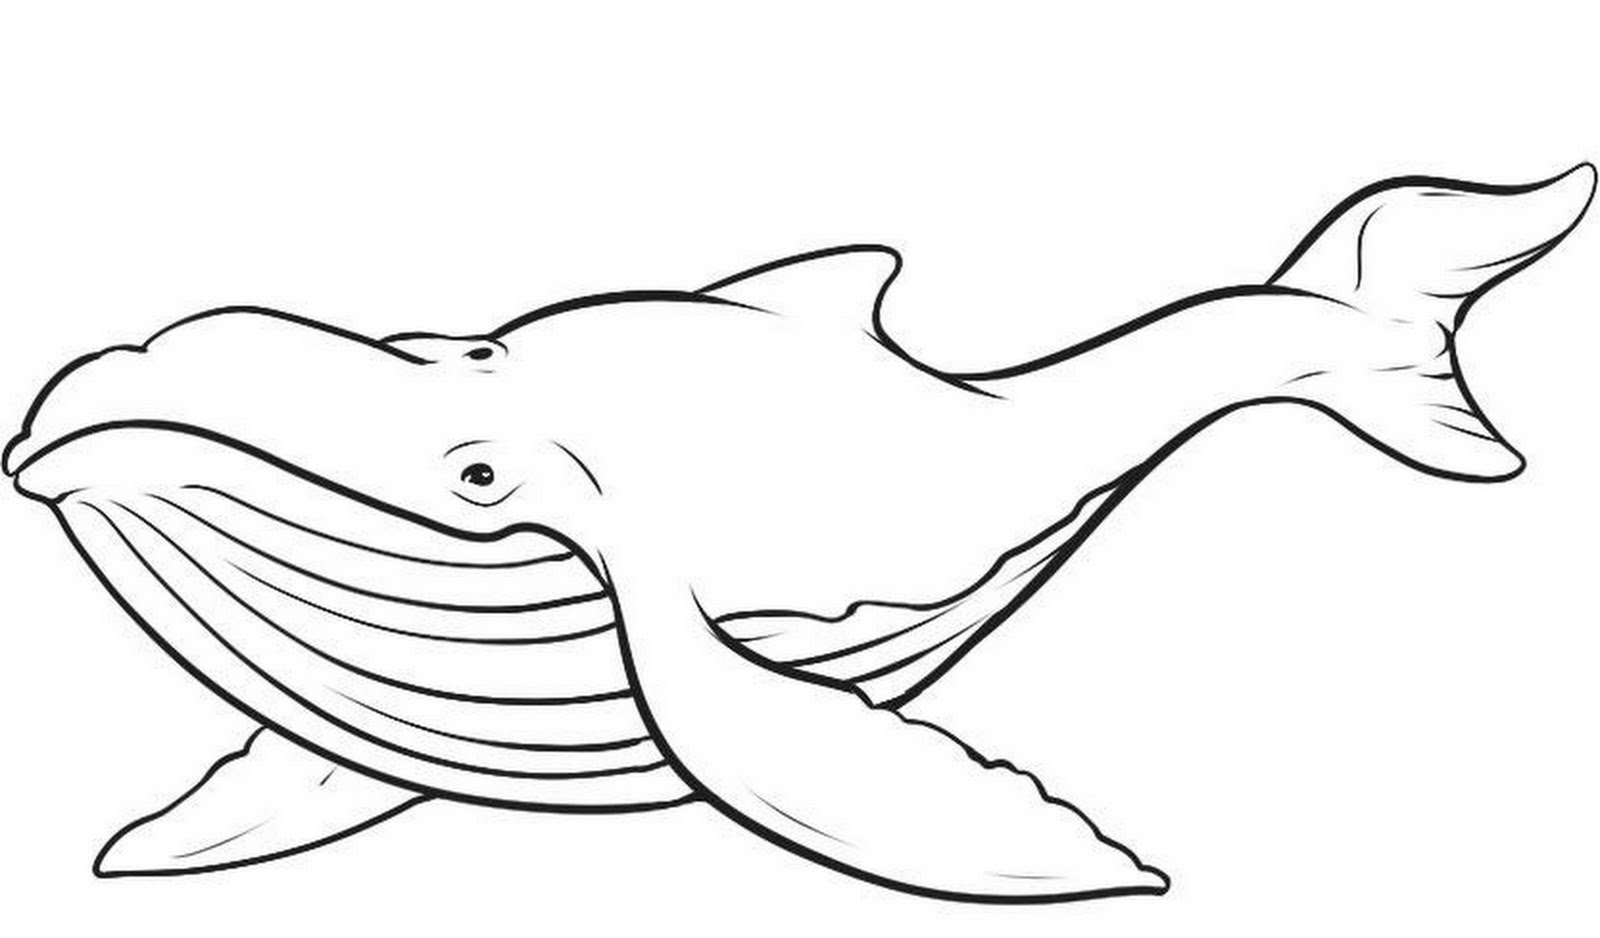 whale coloring pages images - Coloring Picture Of A Whale